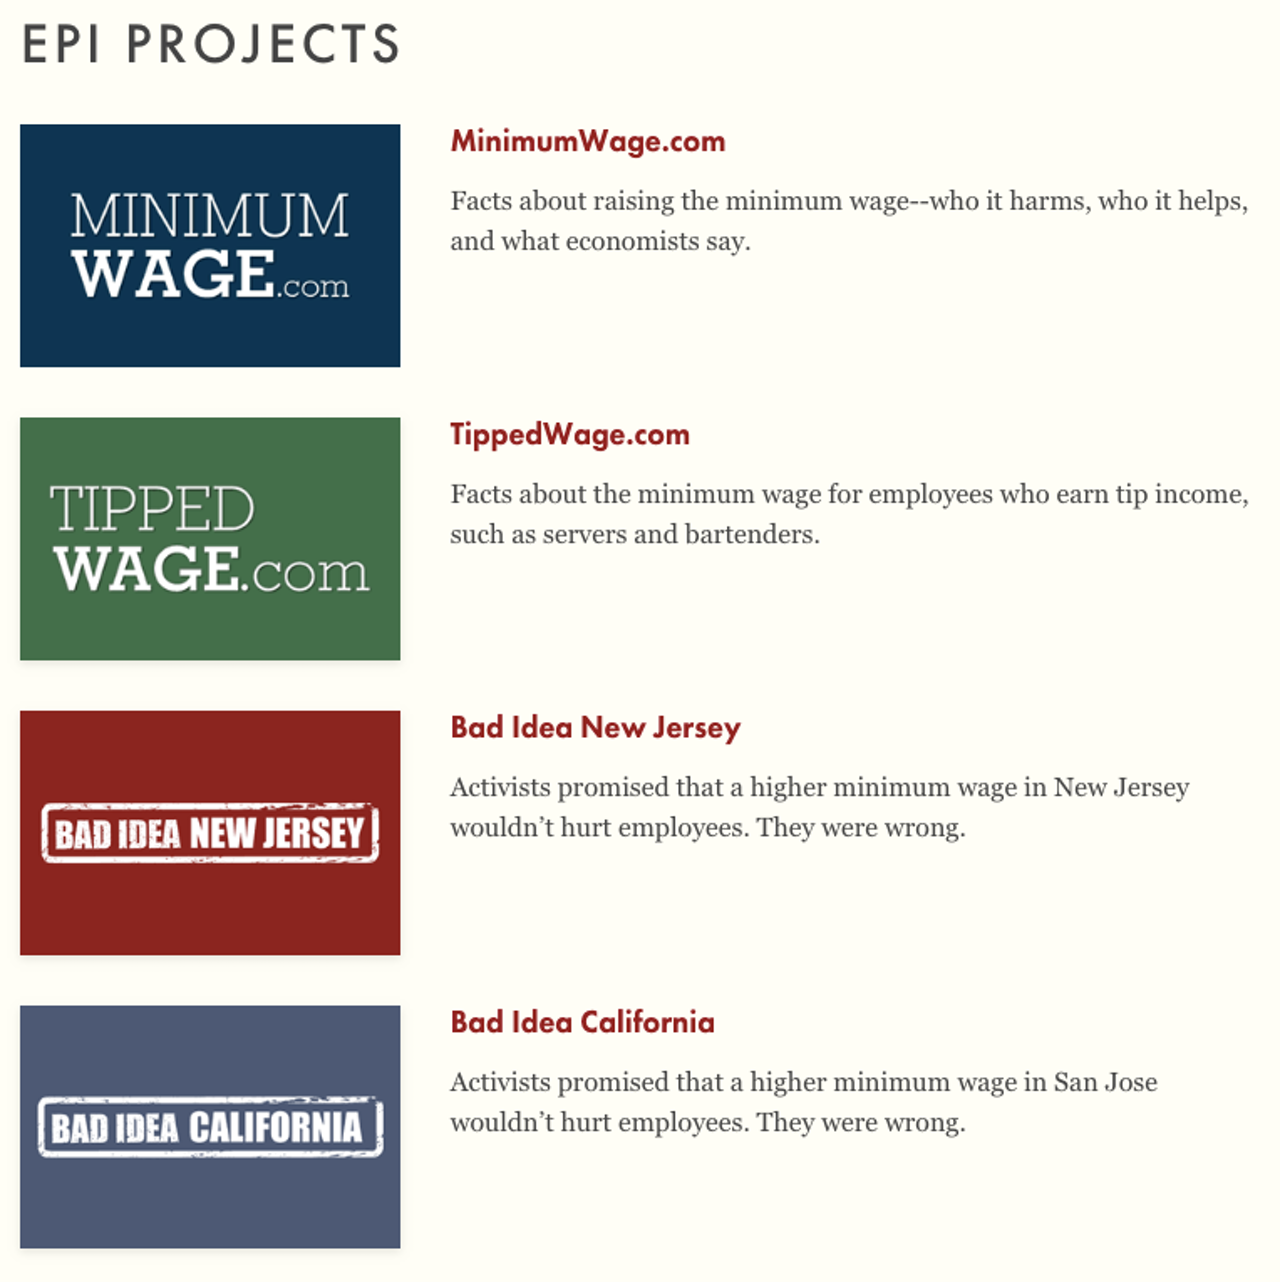 A collection of Berman's Employment Policies Institute projects.